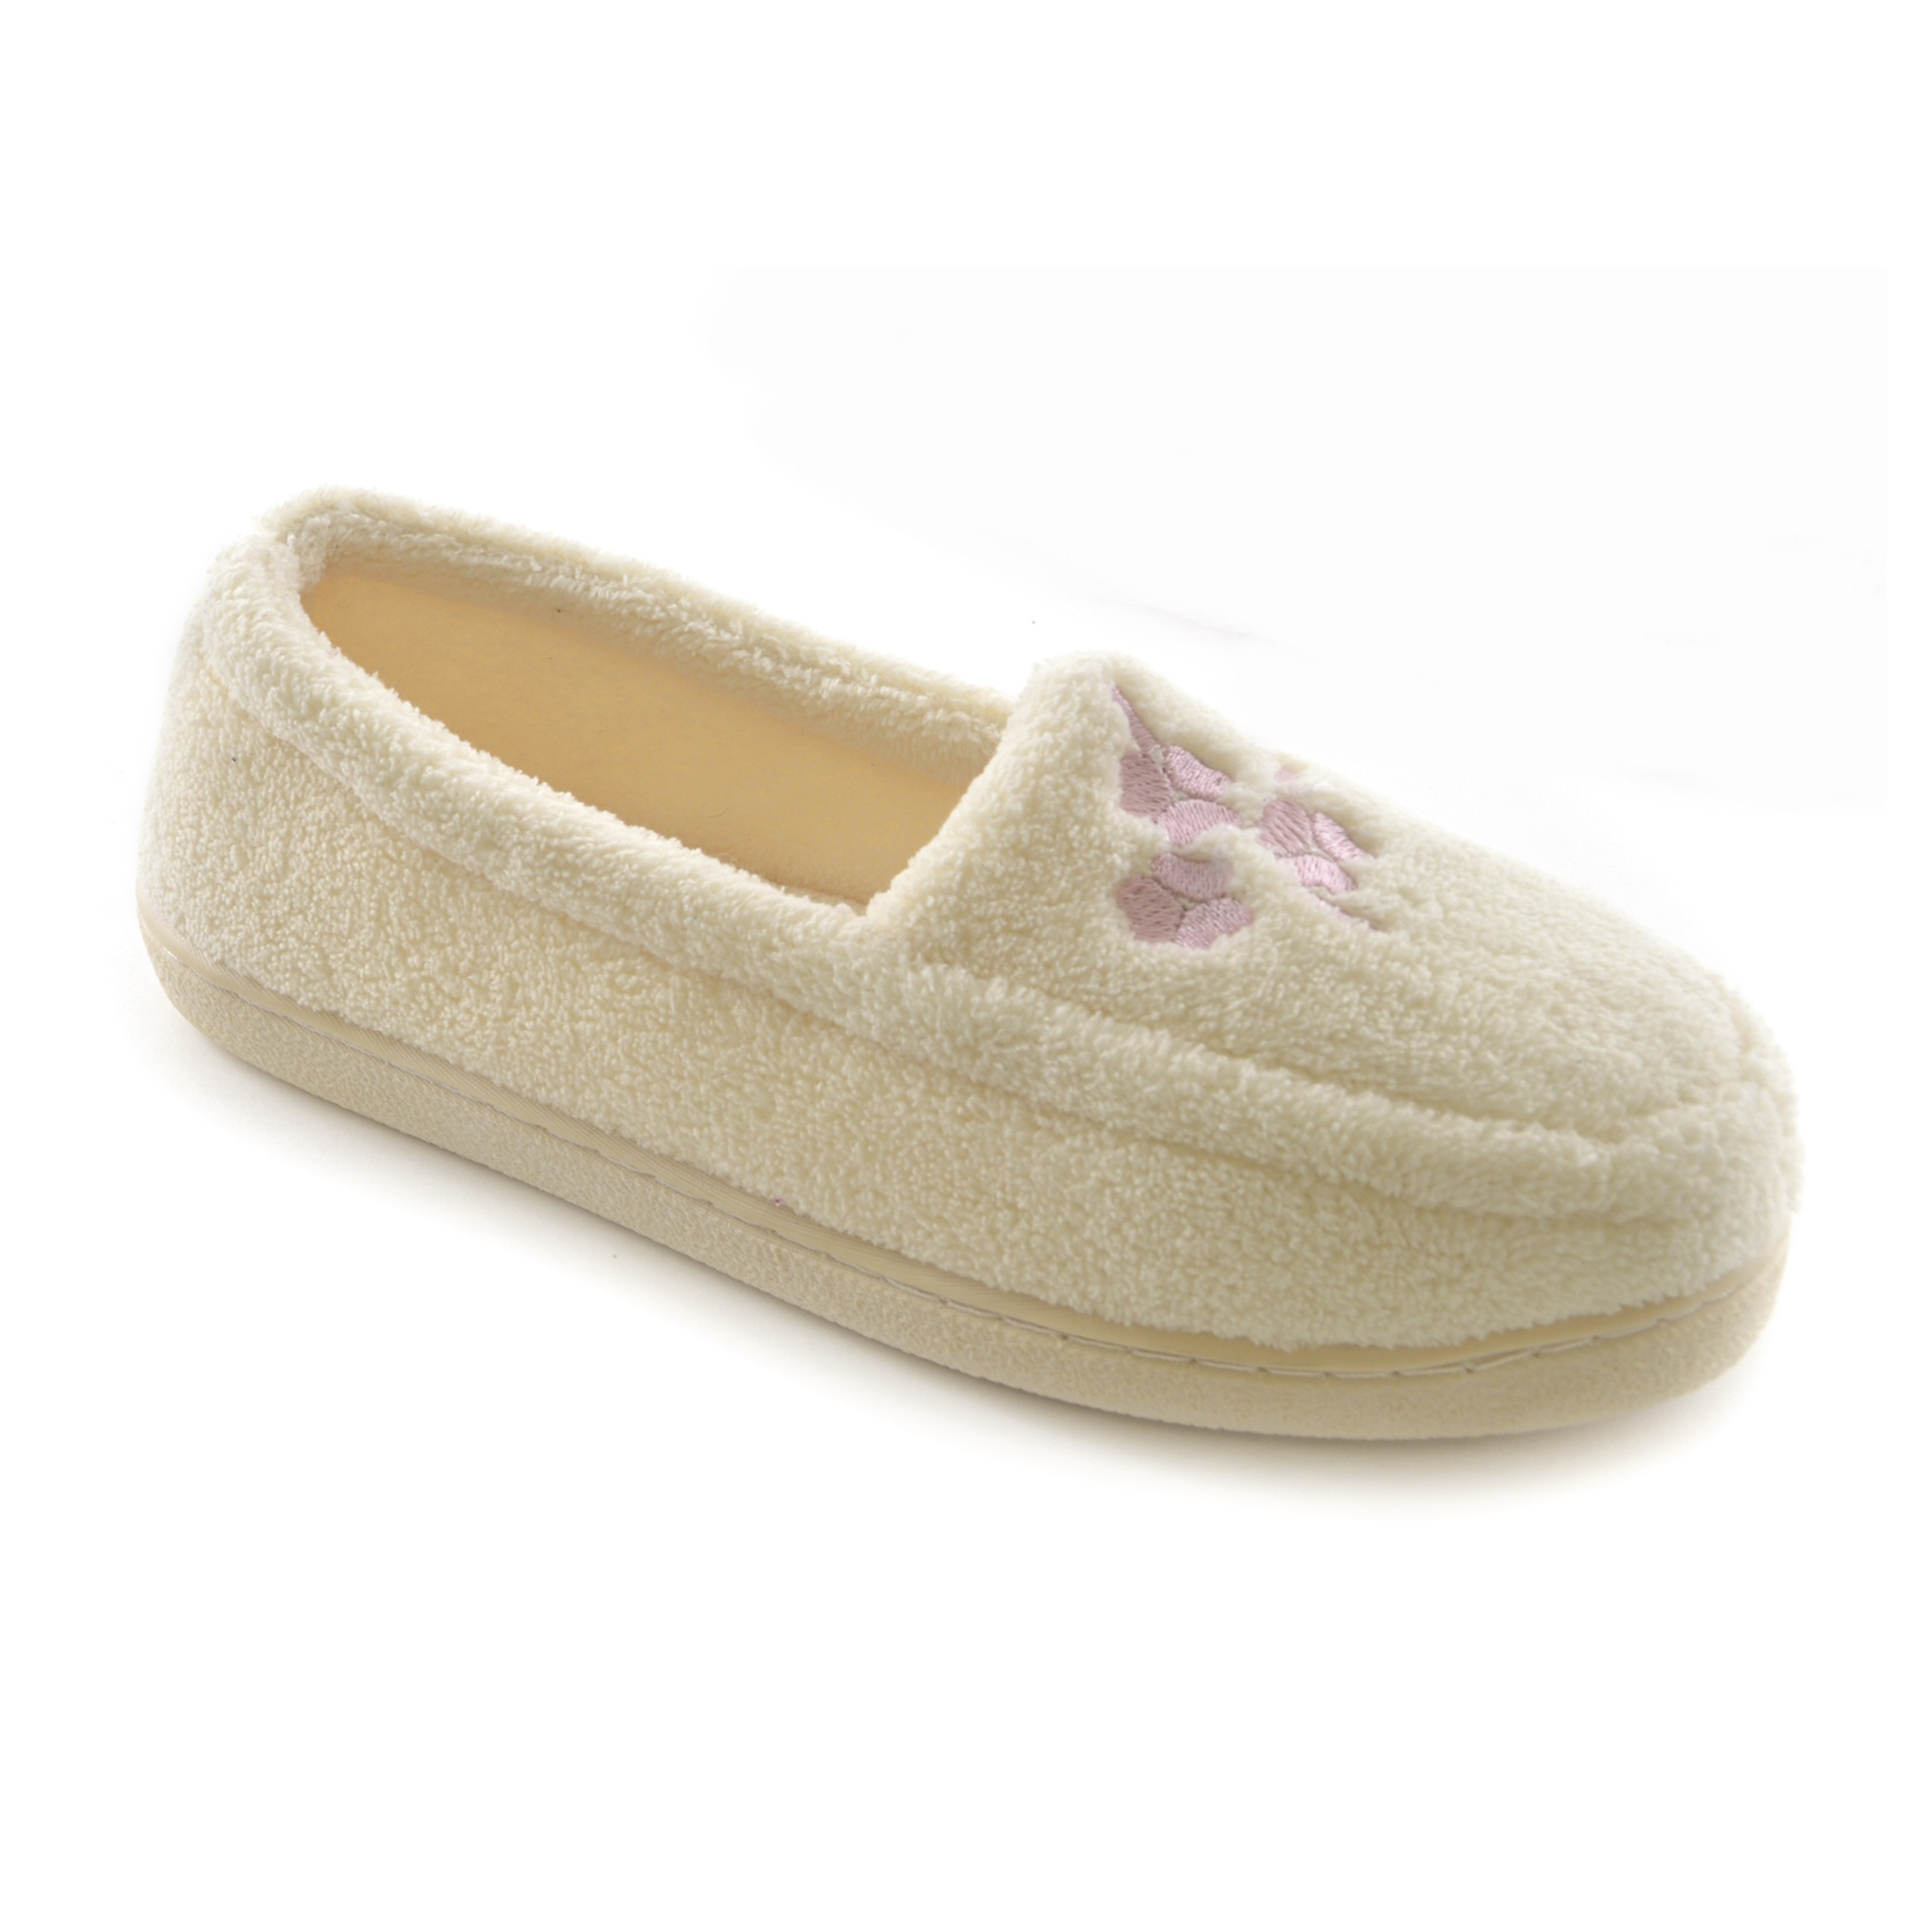 Slippers. Slip into fashionable comfort with a great pair of slippers. Whether you're in search of styles to wear around the house or to coordinate with your casual wardrobe, you'll love the look and feel of these shoes.